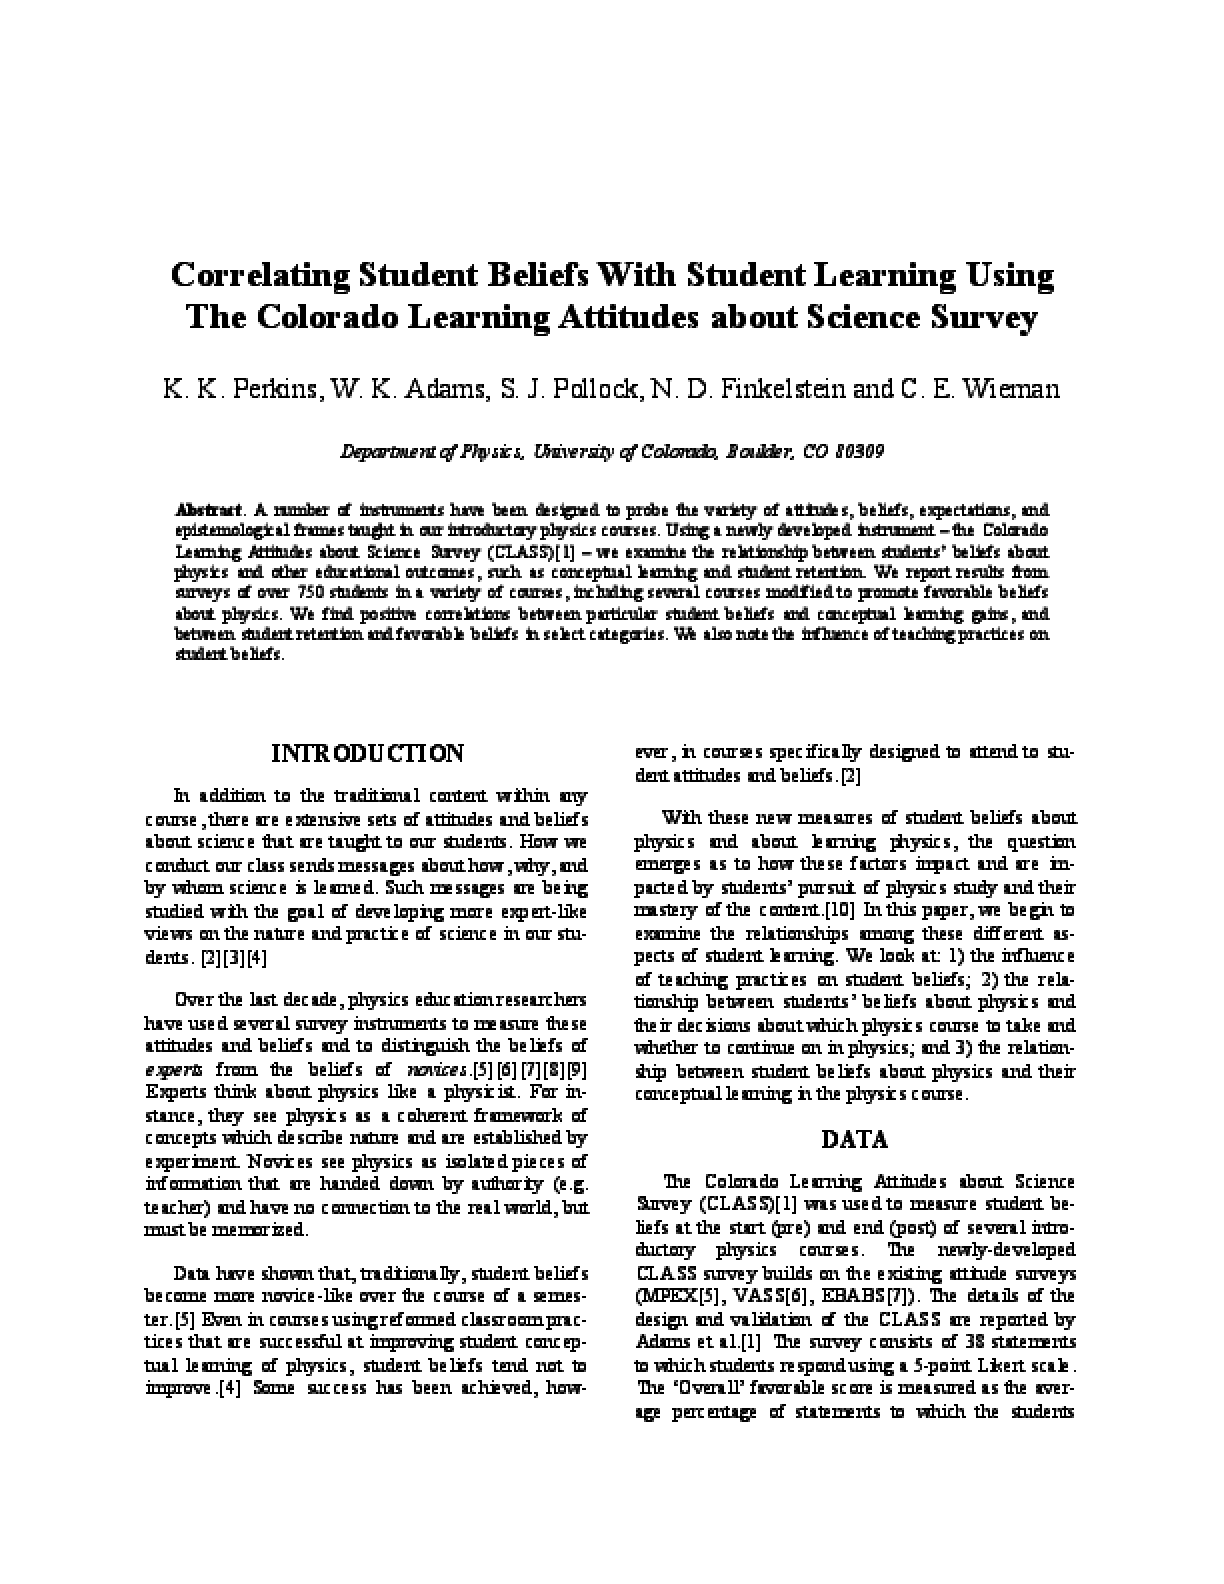 Correlating Student Beliefs With Student Learning Using The Colorado Learning Attitudes about Science Survey